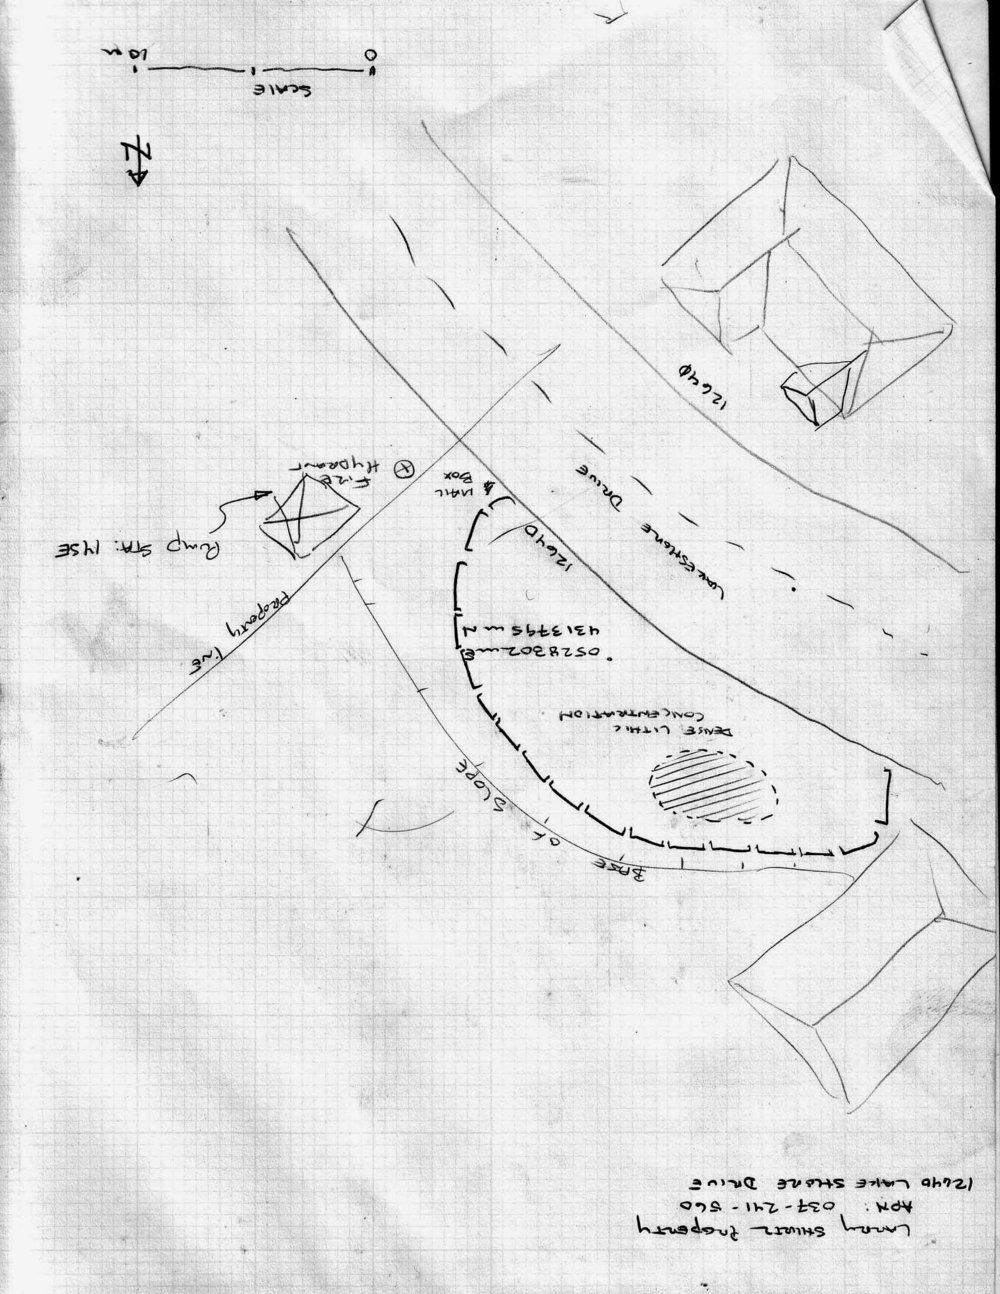 Sketch map LS-1.JPG